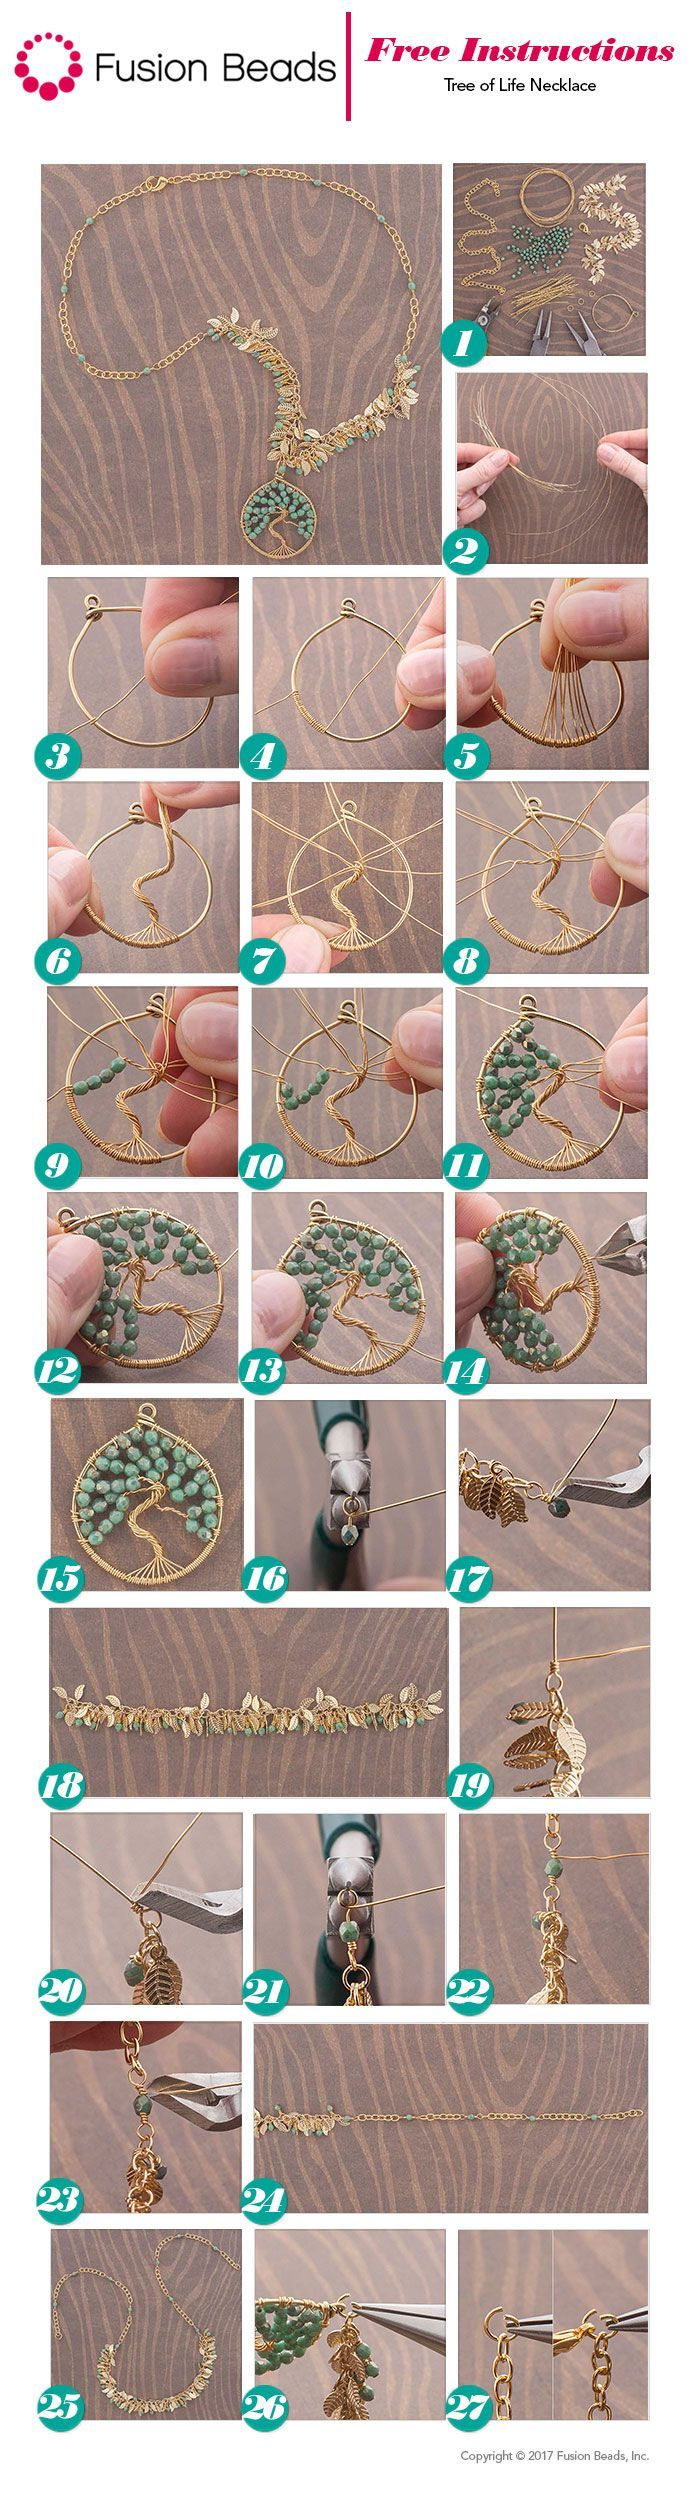 Tree of Life Necklace Inspiration Project